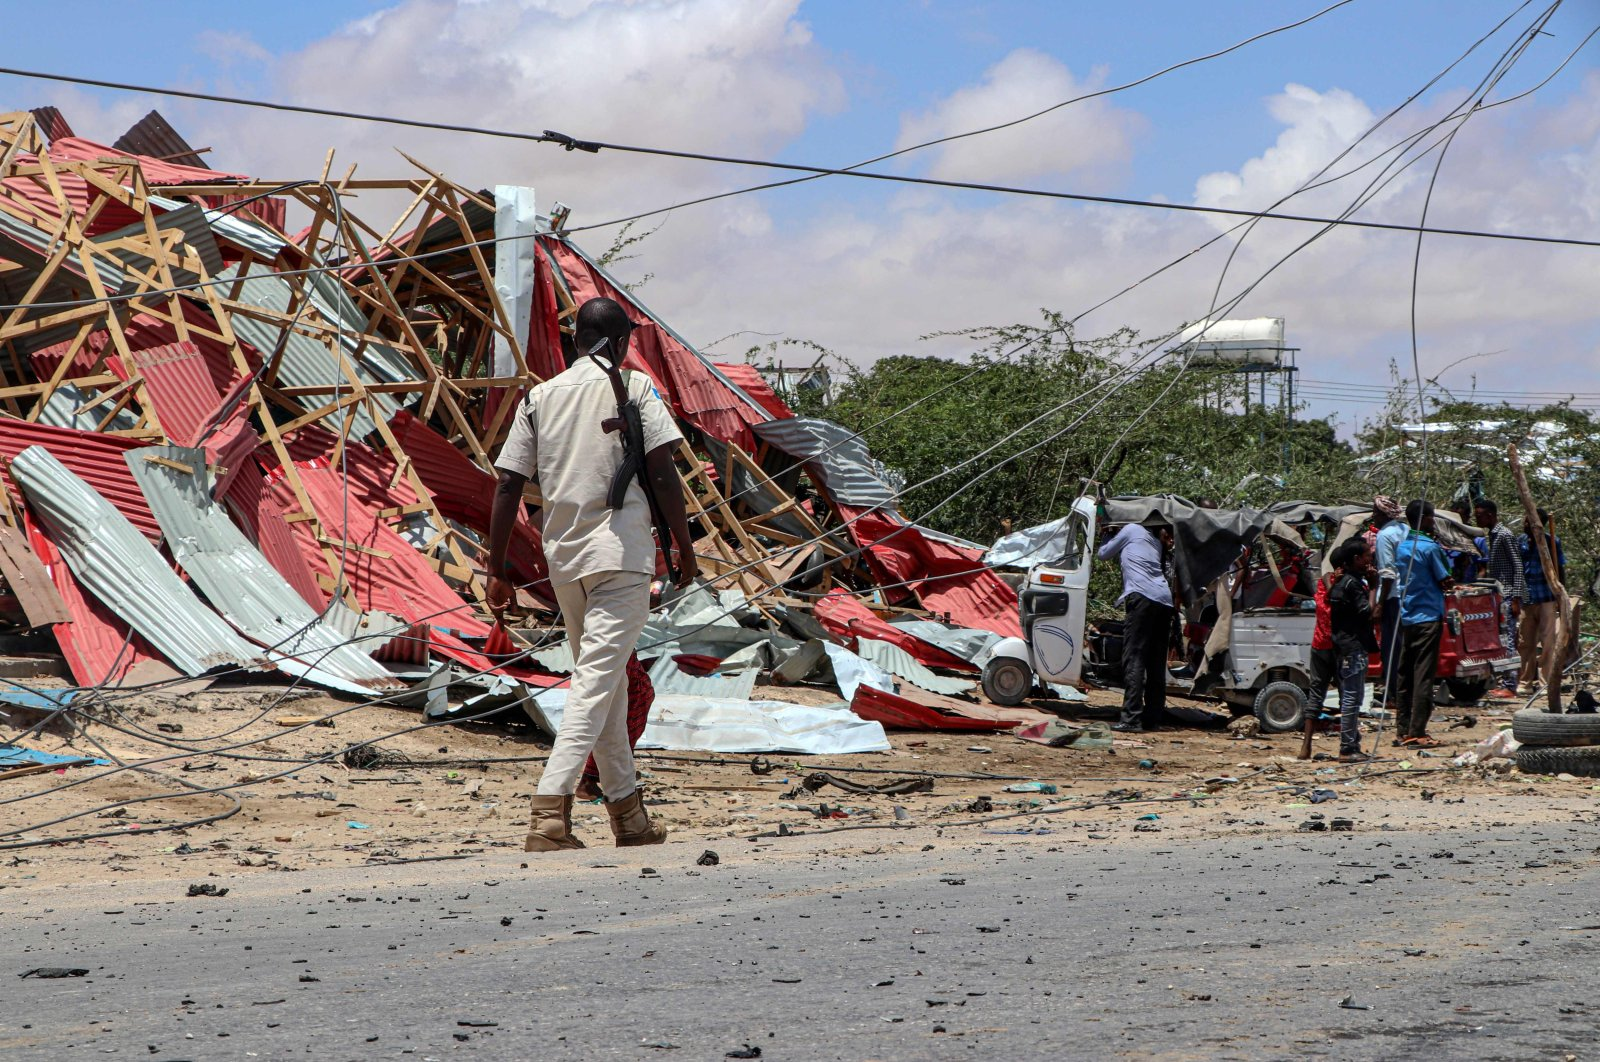 A Somali police officer patrols (L) as bystanders gather at the site of a suicide car bombing that targeted a European Union vehicle convoy in Mogadishu, Somalia, Sept. 30, 2019. (AFP Photo)